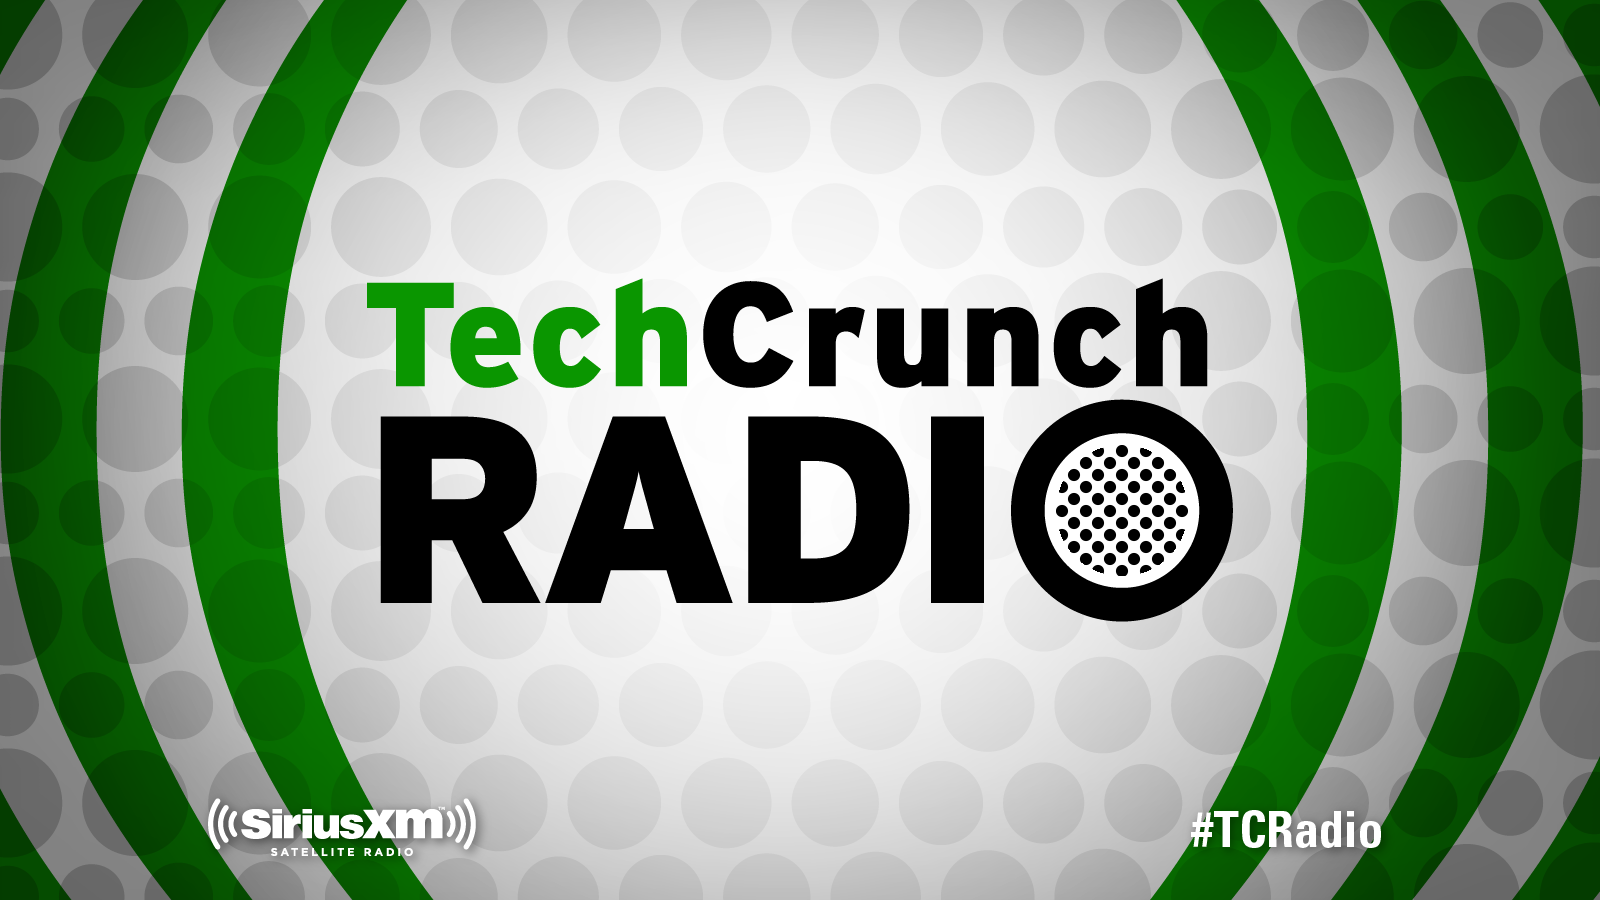 techcrunch-radio1